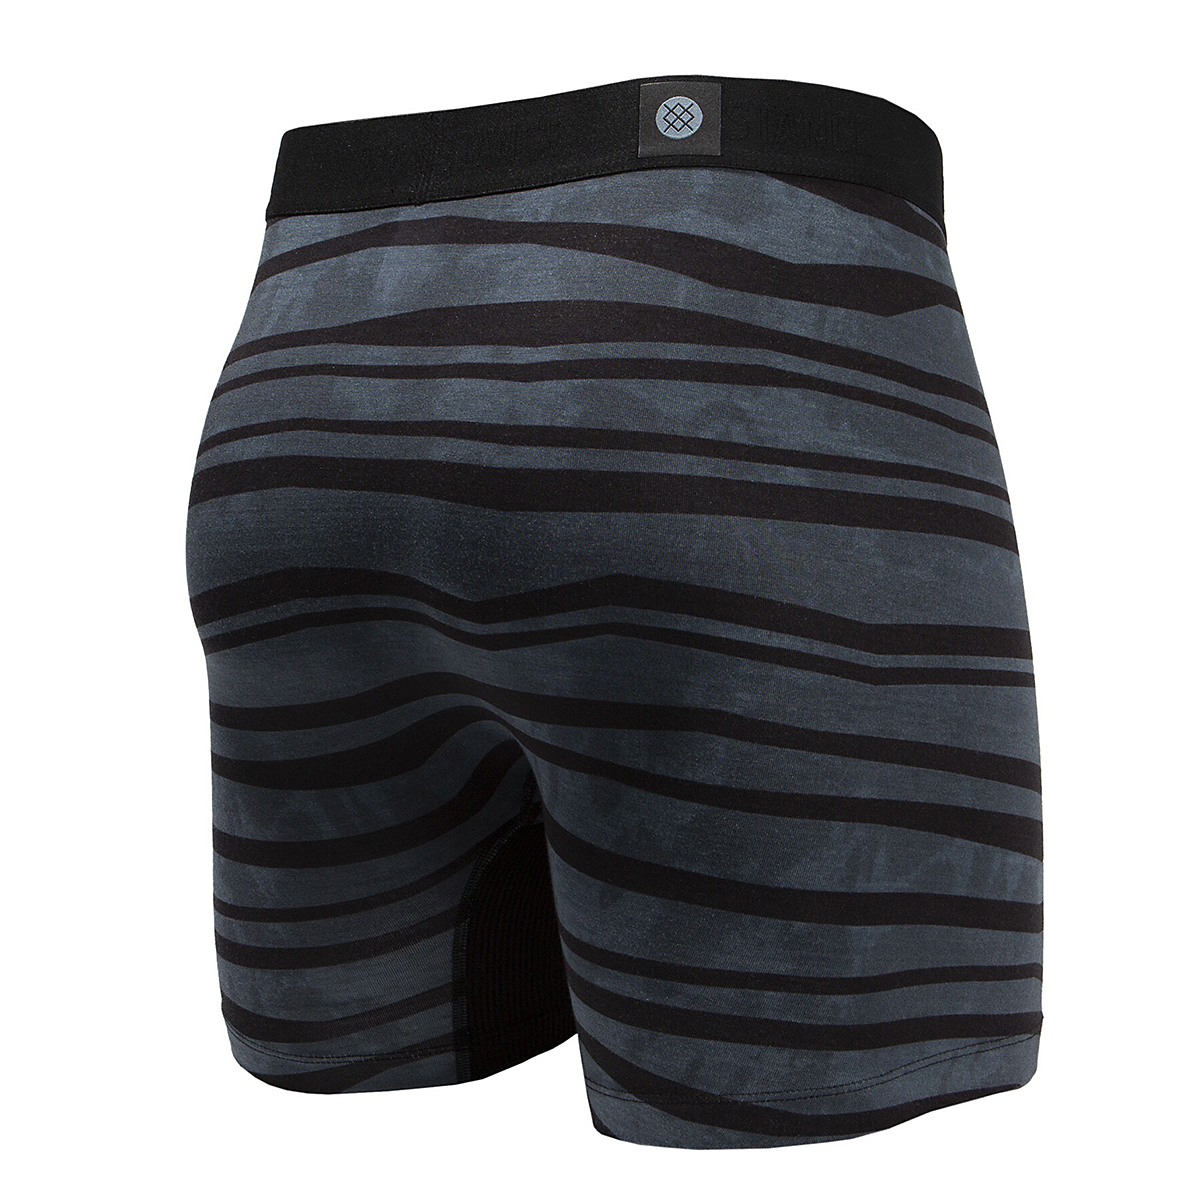 Men's Stance Drake Boxer Brief - Color: Charcoal - Size: S, Charcoal, large, image 2